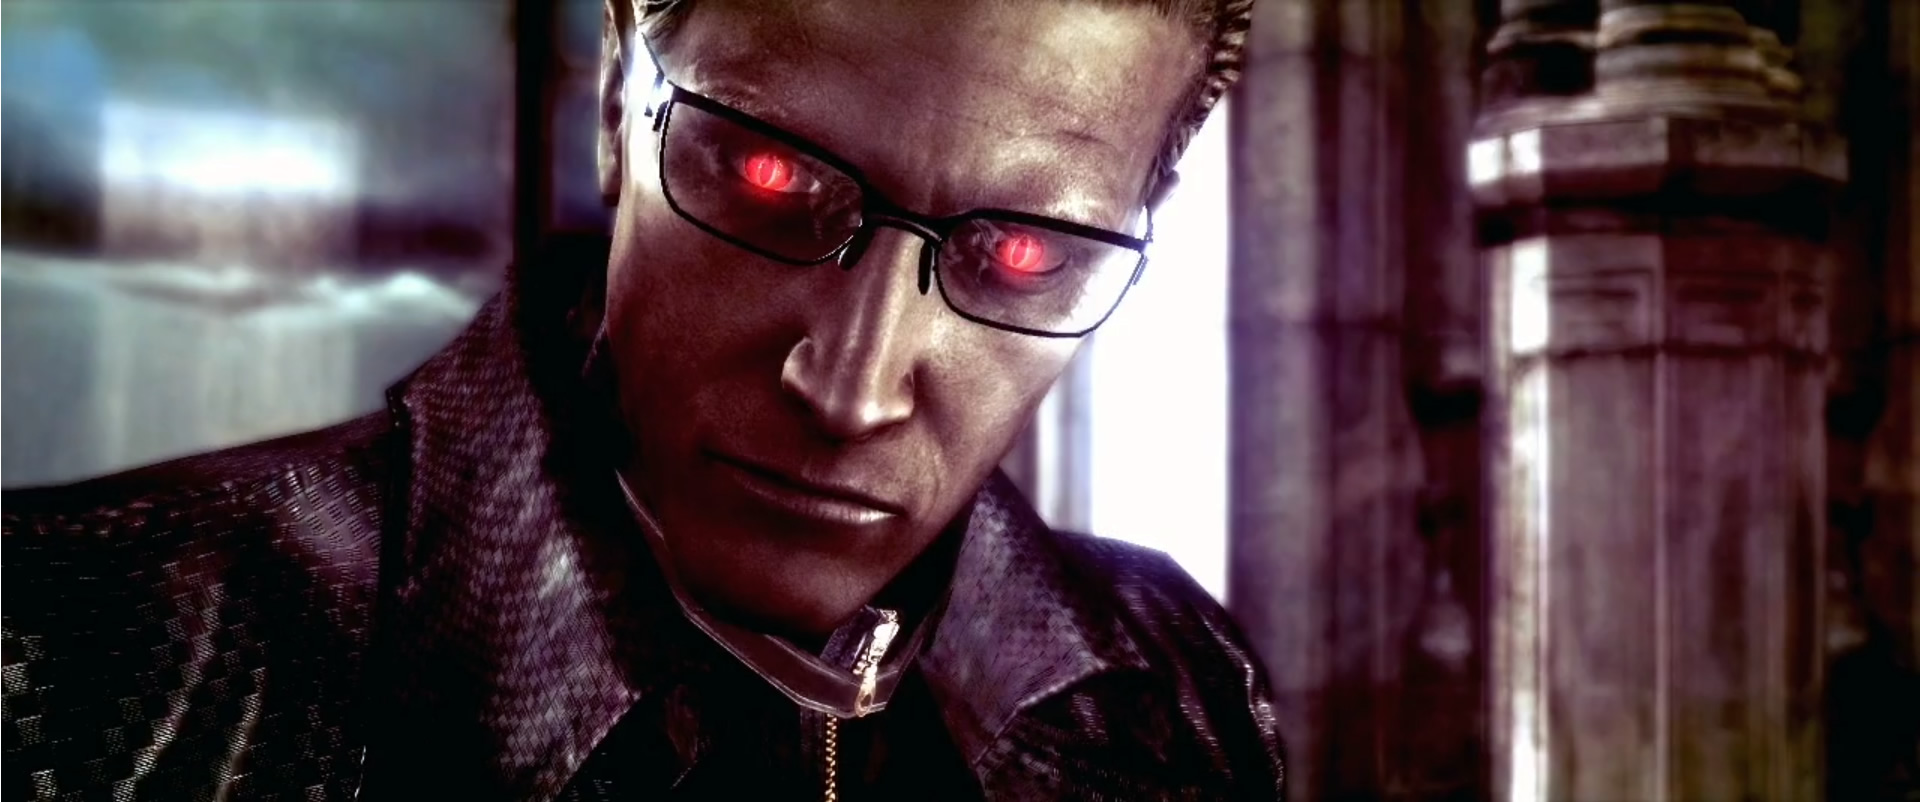 resient evil wesker - photo #27